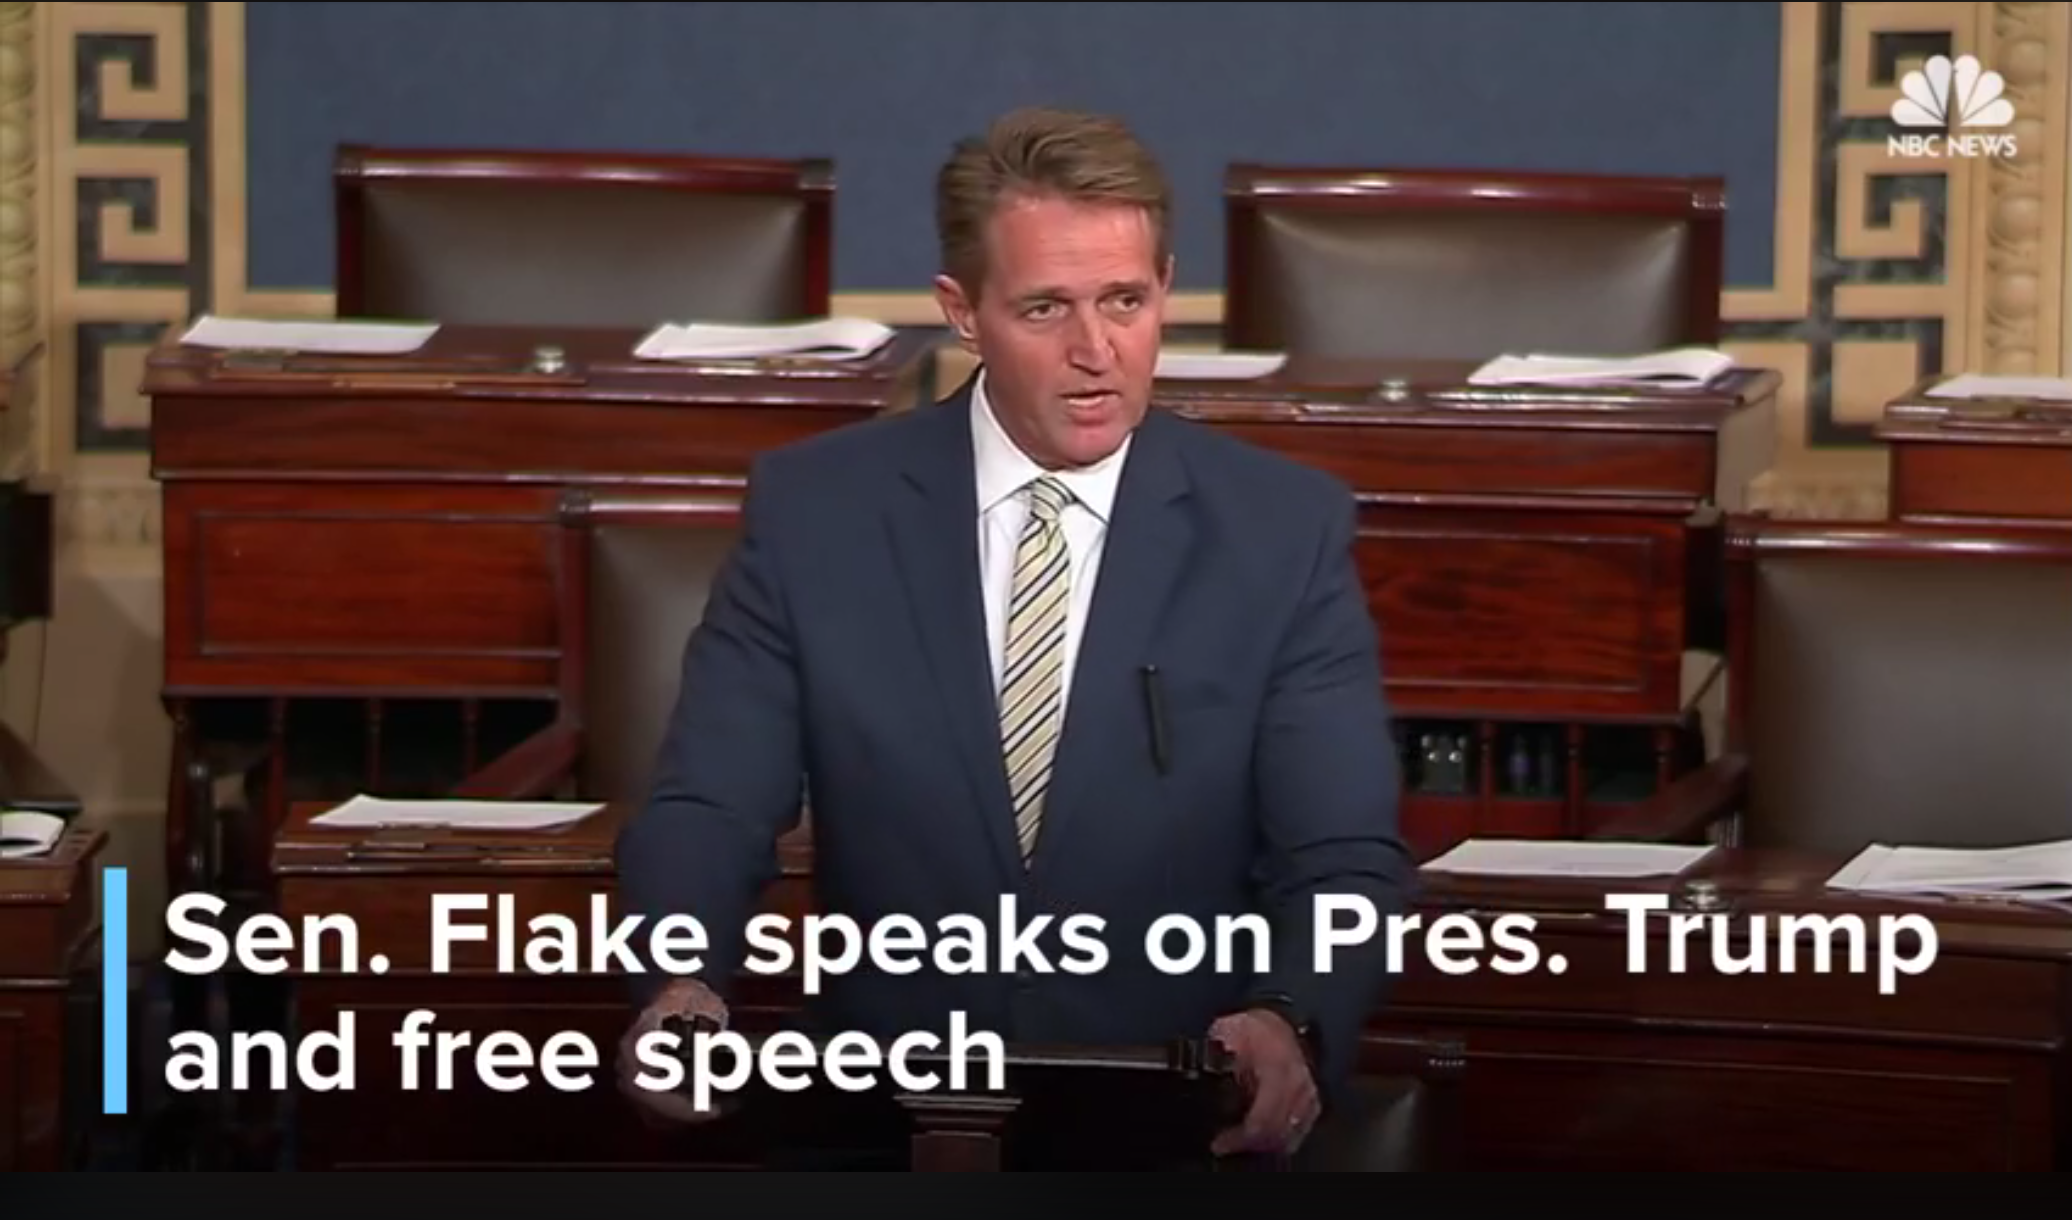 In Historic Speech, Jeff Flake Compares Trump to Stalin, Blasting Trump's Lies, While Defending the Press and First Amendment